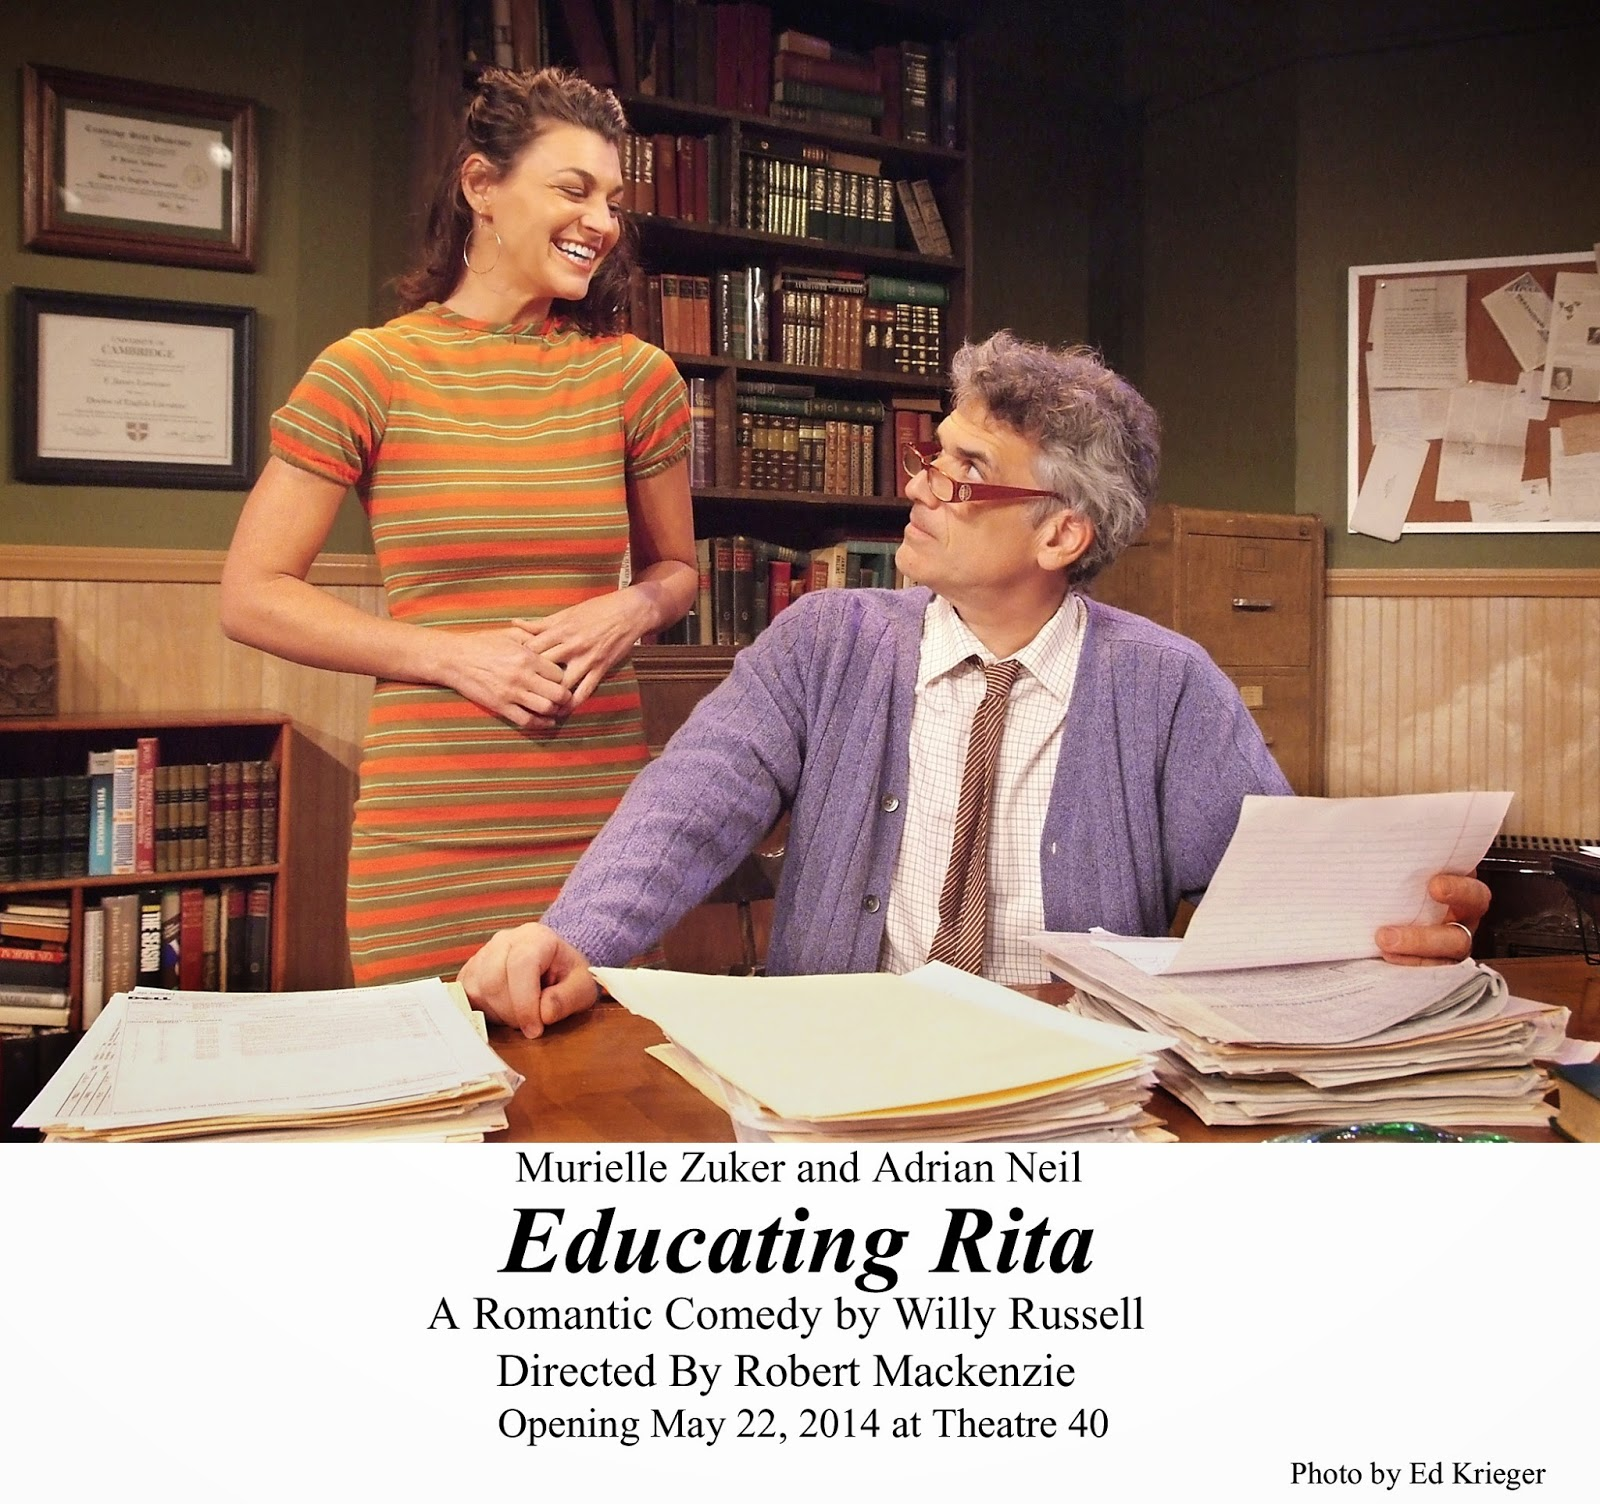 a review of the play educating rita by willy russell In addition to turning educating rita into a movie, russell also adapted the play for the radio, possibly pointing to rita's witty line, do it on the radio the program aired on bbc radio 4 in 2009.